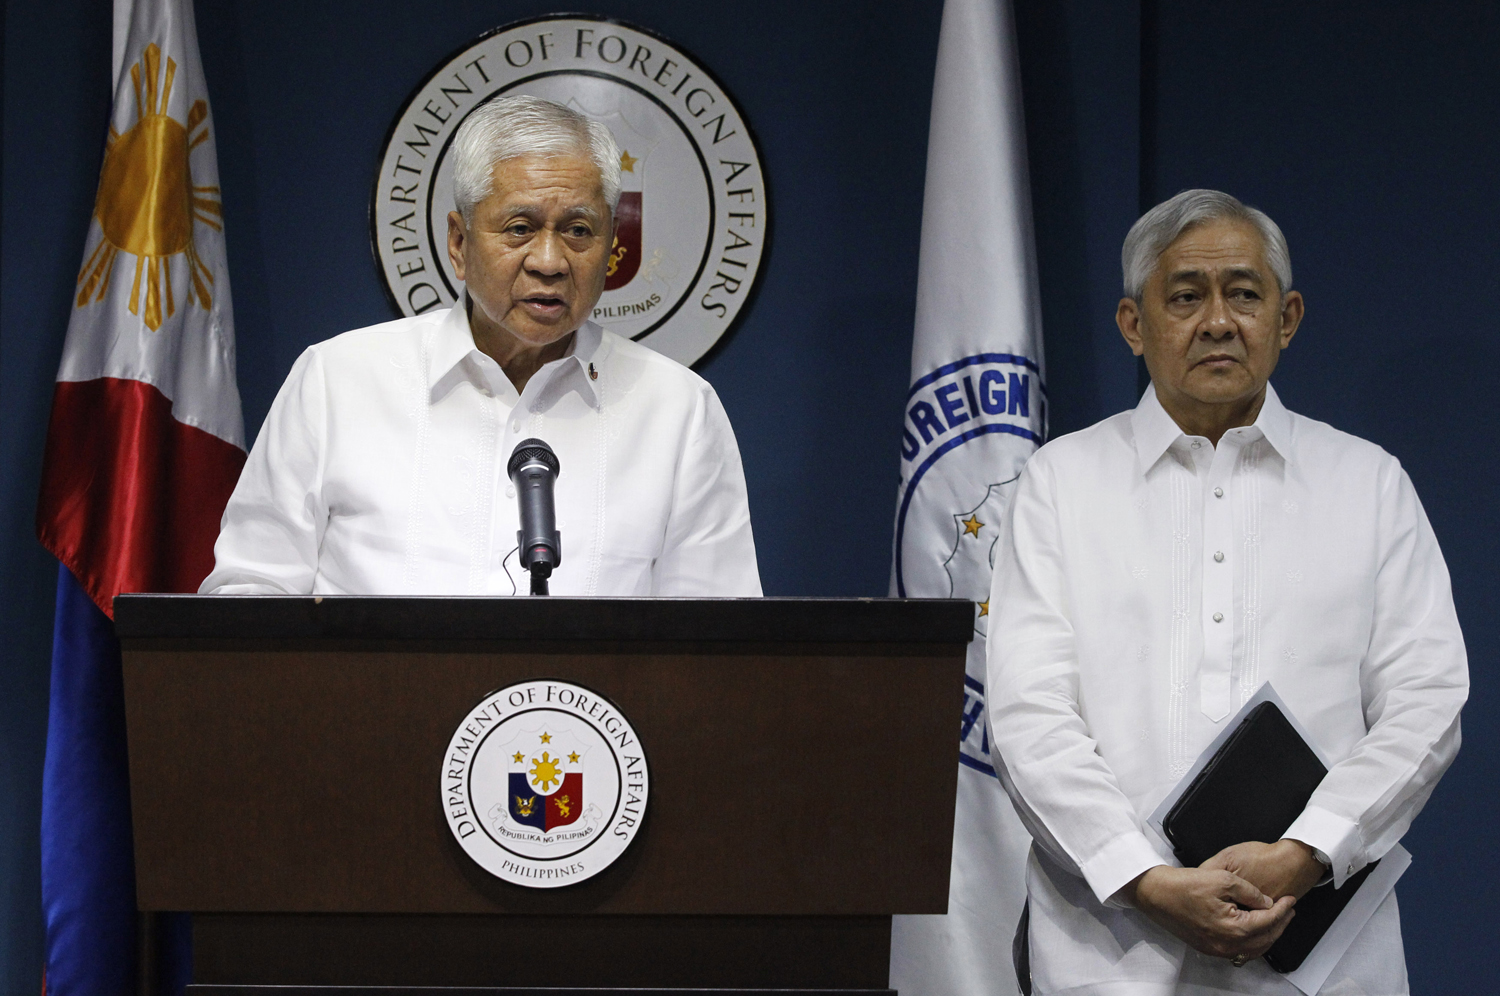 Philippine Foreign Secretary Albert del Rosario (L) stands next to Solicitor General Francis Jardeleza during a news conference in Manila March 30, 2014.